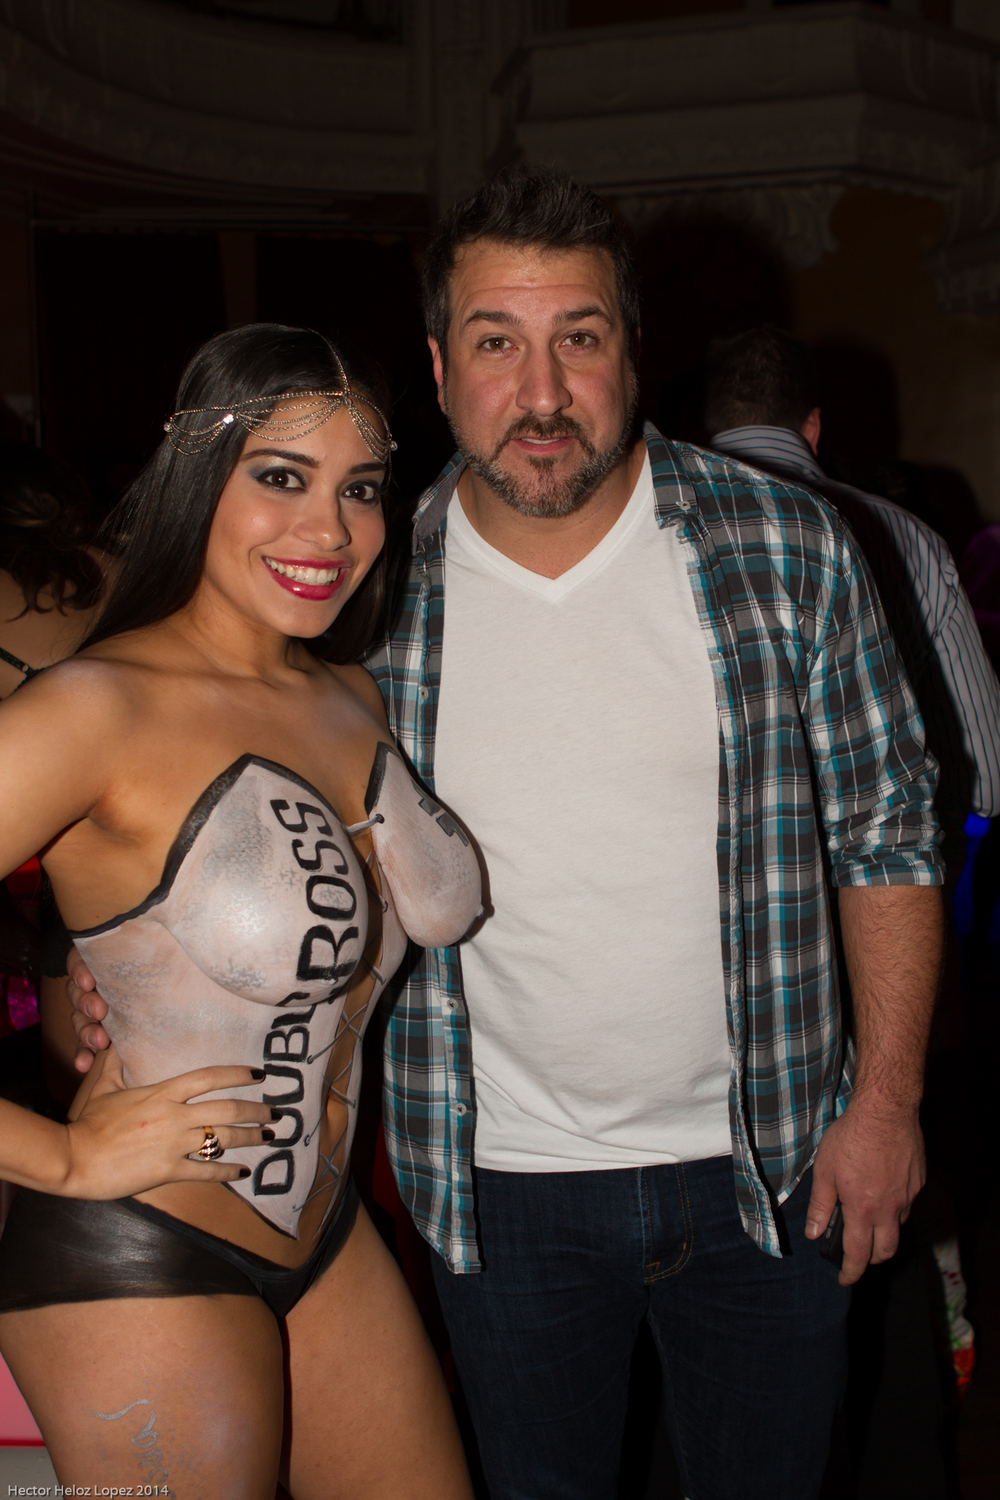 Singer, Dancer, Actor: Joey Fatone